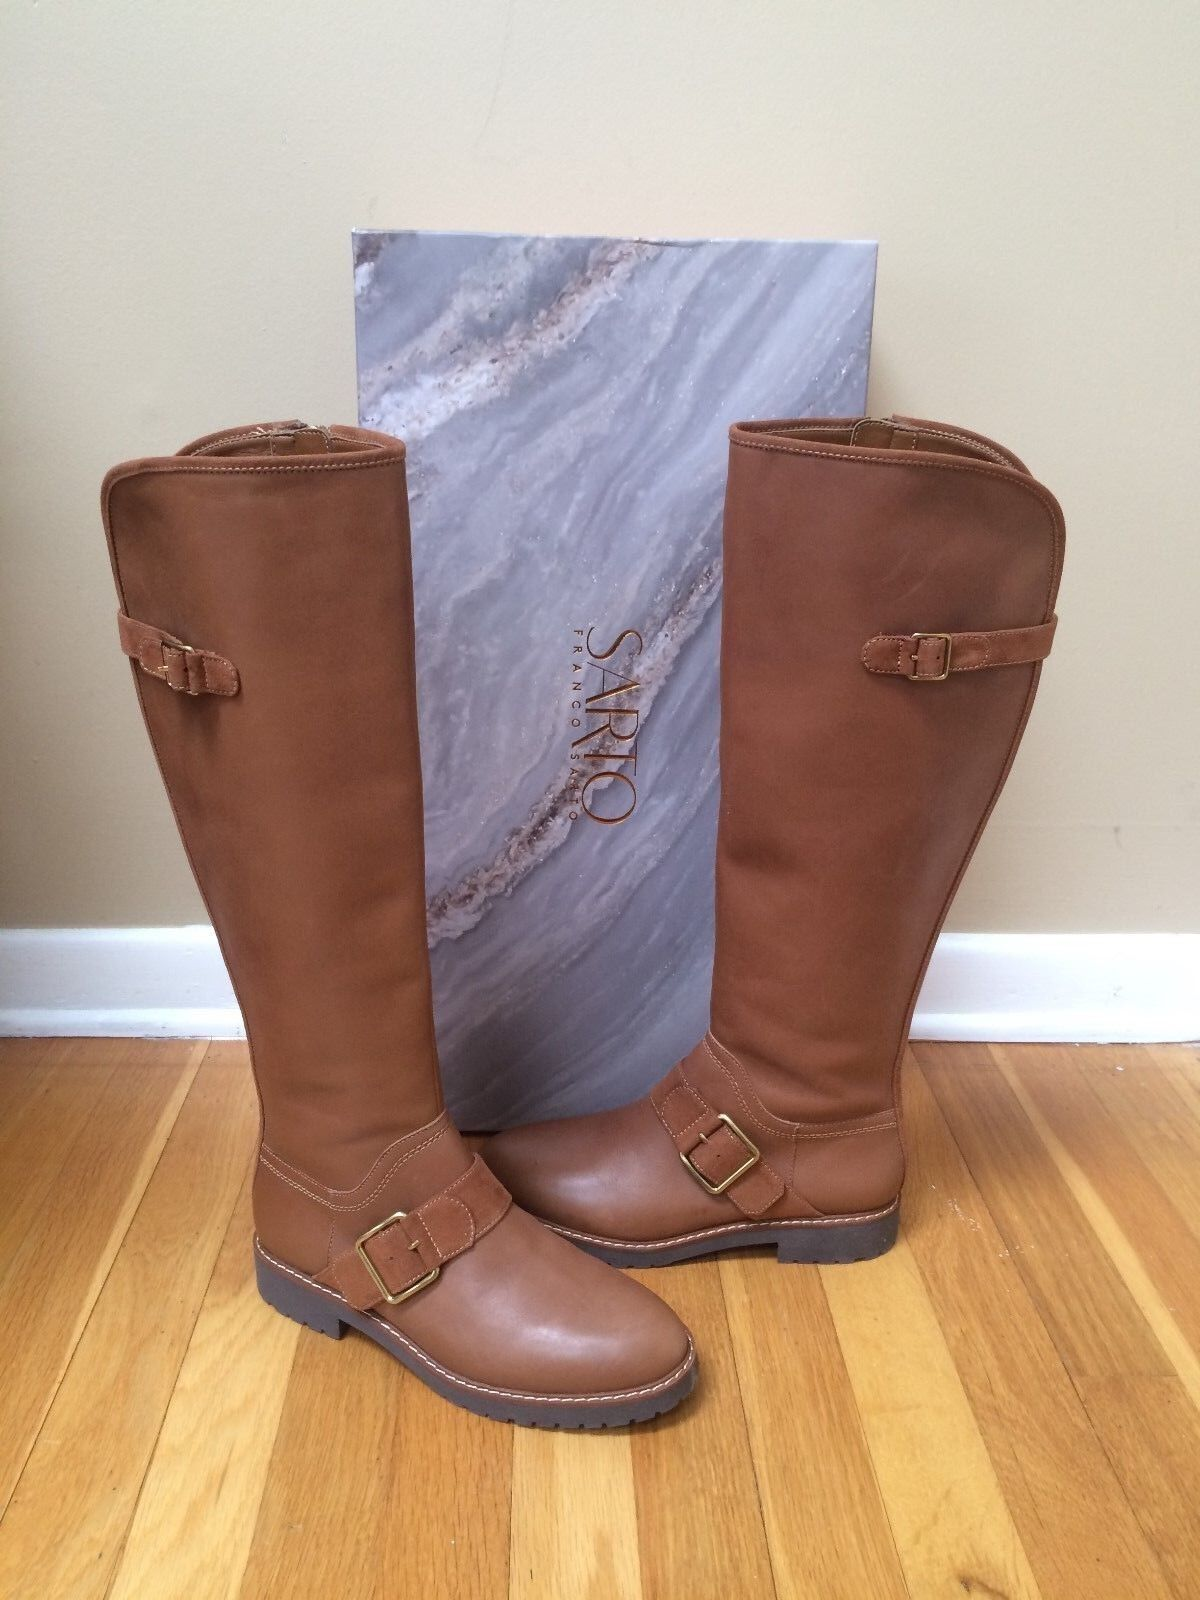 FRANCO SARTO 'Cutler' Tall Leder Riding Stiefel Größe 6.5M Brand New in Box